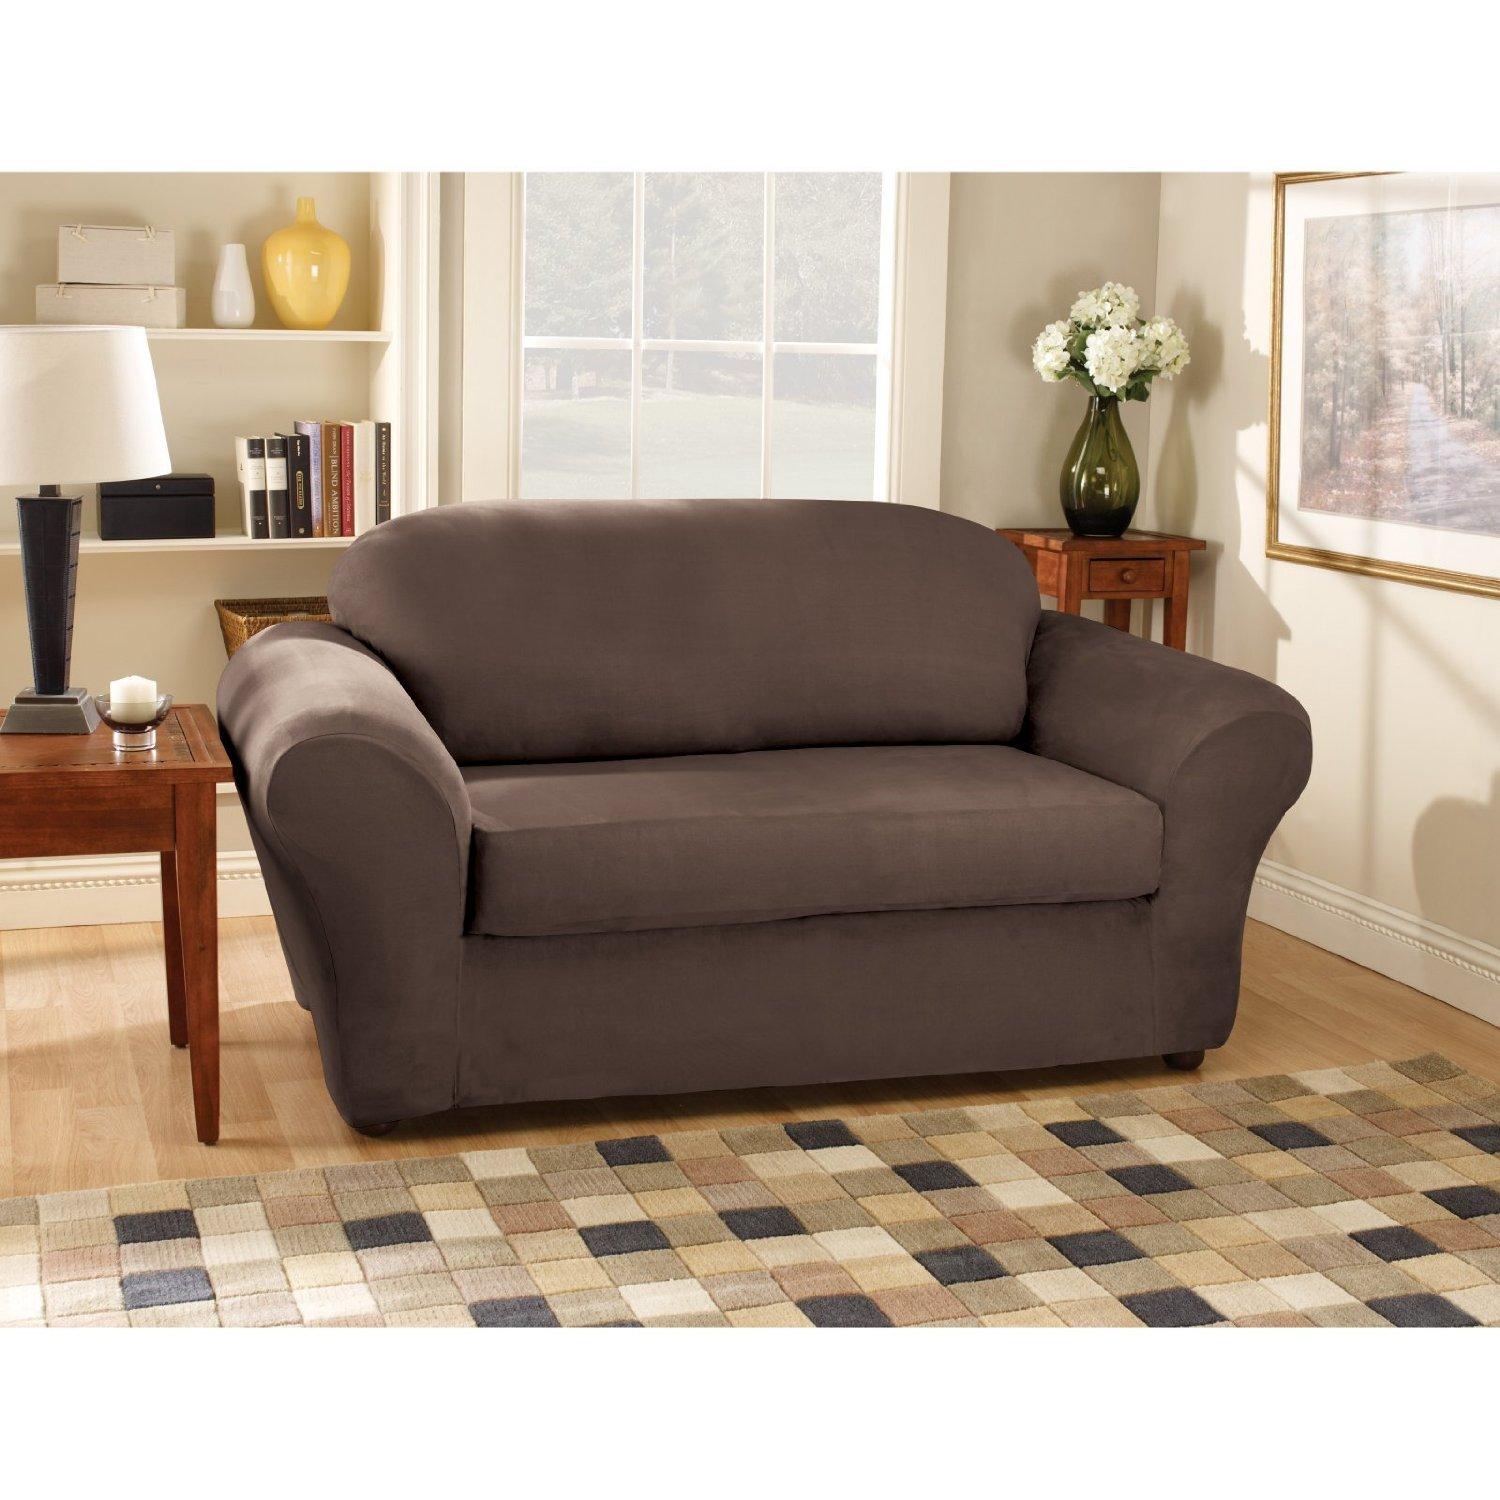 Where to buy couch covers cheap and stylish couch sofa ideas interior design Cover for loveseat